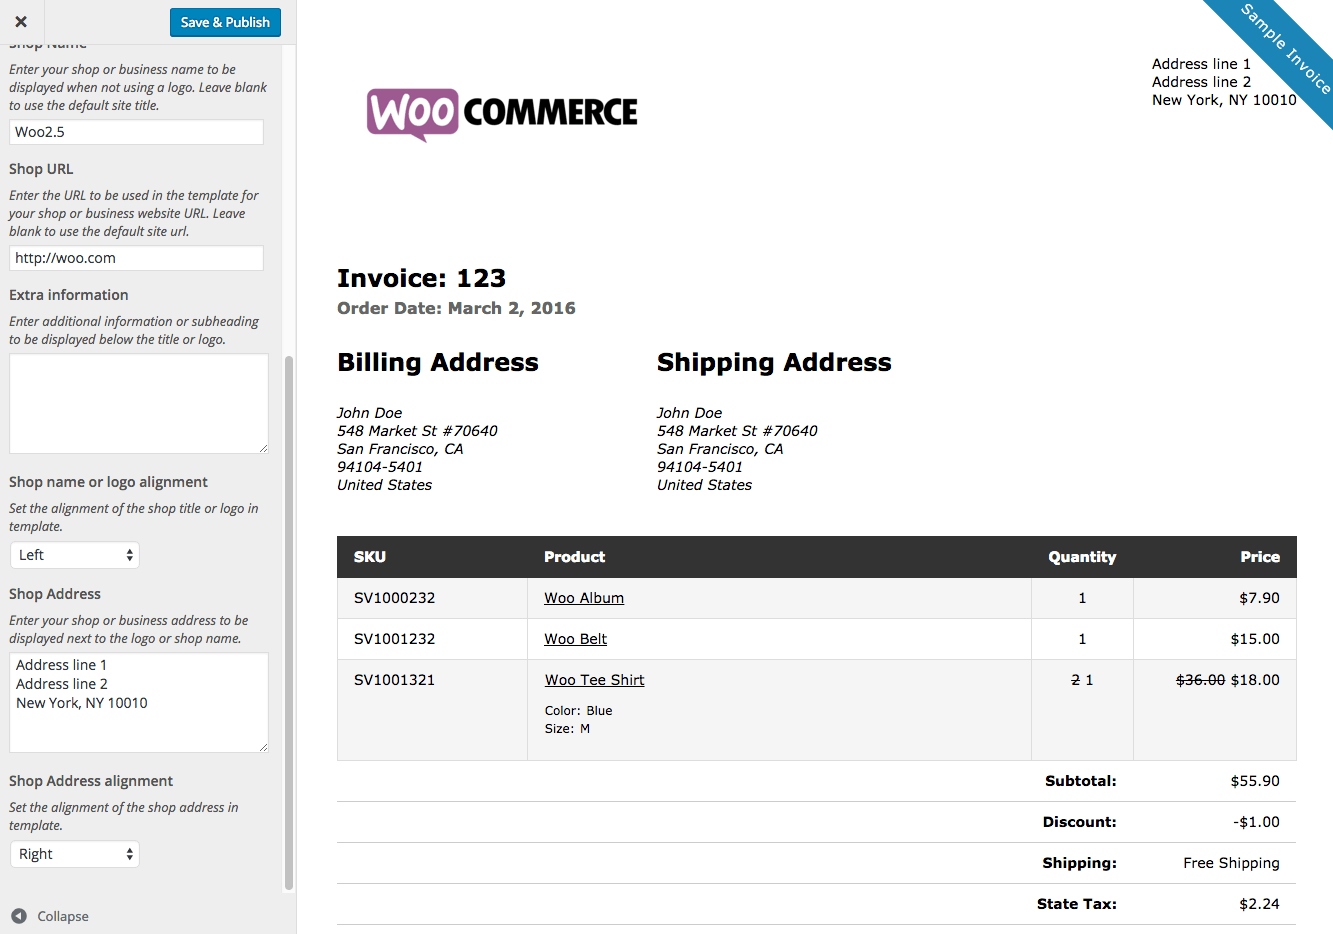 Coachoutletonlineplusus  Pretty Woocommerce Print Invoices Amp Packing Lists  Woocommerce Docs With Inspiring Woocommerce Print Invoices  Packing Lists Customizer With Cute Paypal Invoice Number Also How To Type Up An Invoice In Addition Microsoft Word  Invoice Template And Invoice Freelance As Well As Invoice Template For Services Additionally Payroll Invoice From Docswoocommercecom With Coachoutletonlineplusus  Inspiring Woocommerce Print Invoices Amp Packing Lists  Woocommerce Docs With Cute Woocommerce Print Invoices  Packing Lists Customizer And Pretty Paypal Invoice Number Also How To Type Up An Invoice In Addition Microsoft Word  Invoice Template From Docswoocommercecom